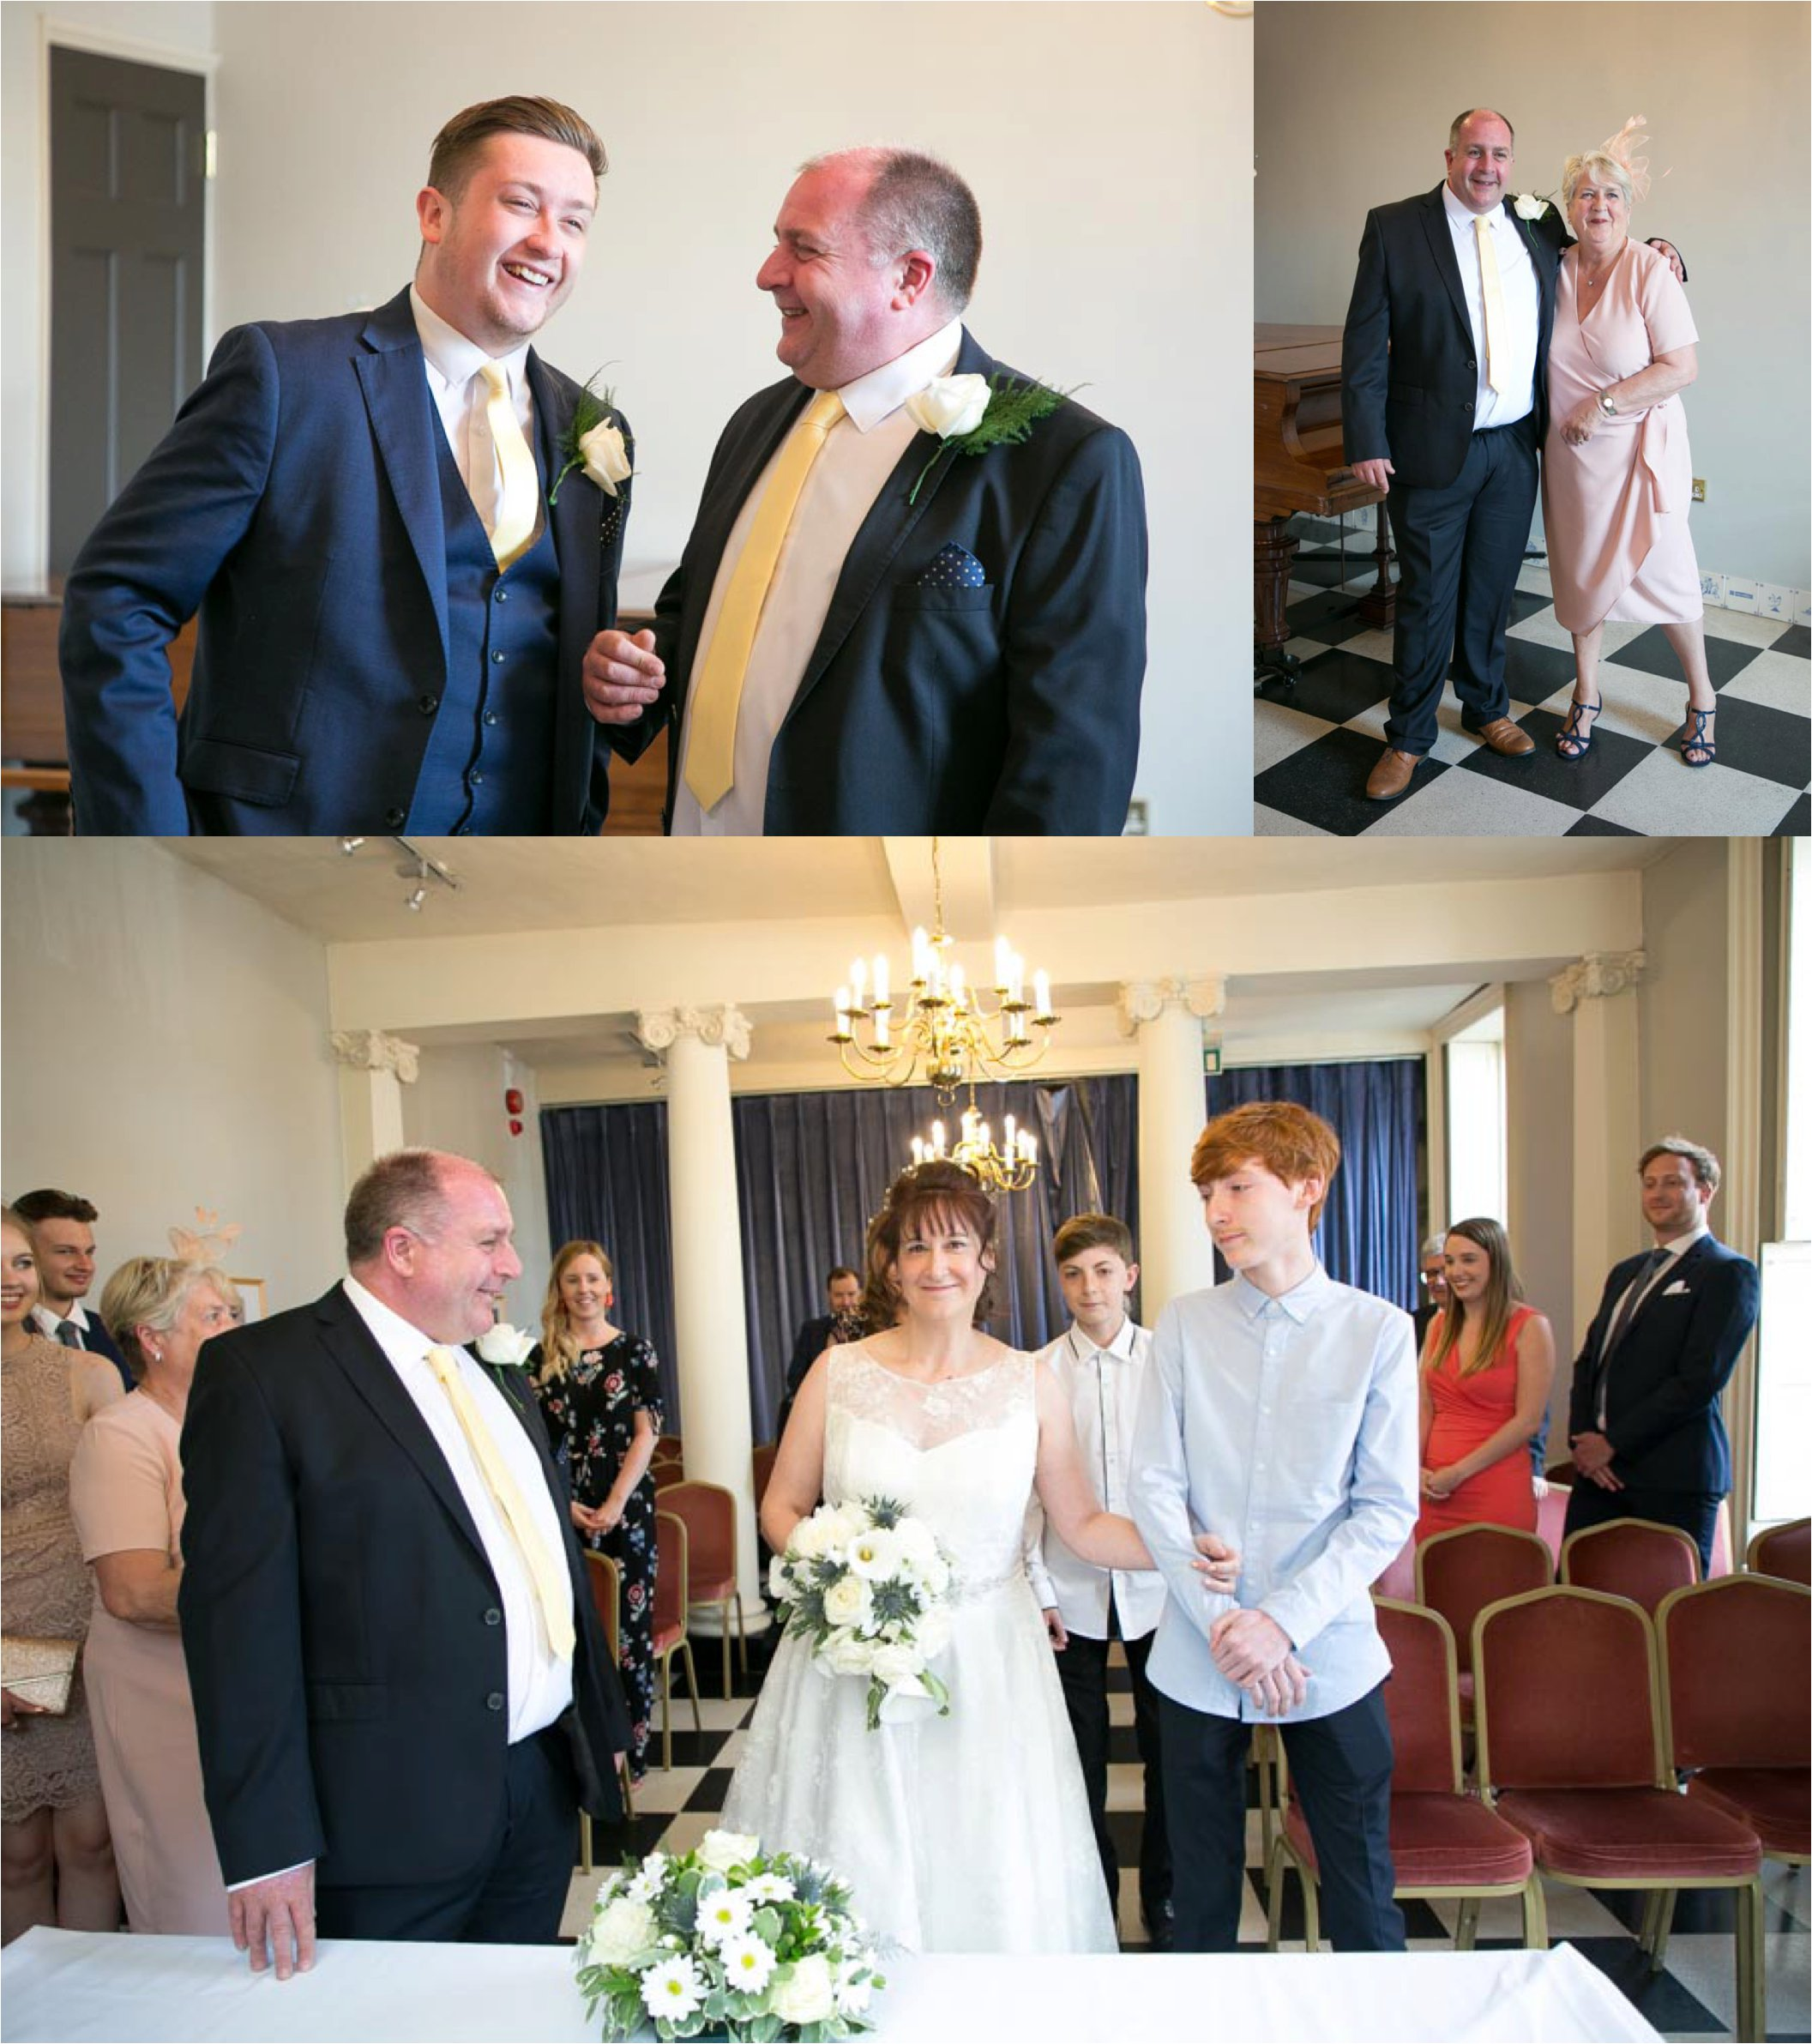 Intimate wedding, small wedding at Athenaeum Bury St Edmunds, Suffolk